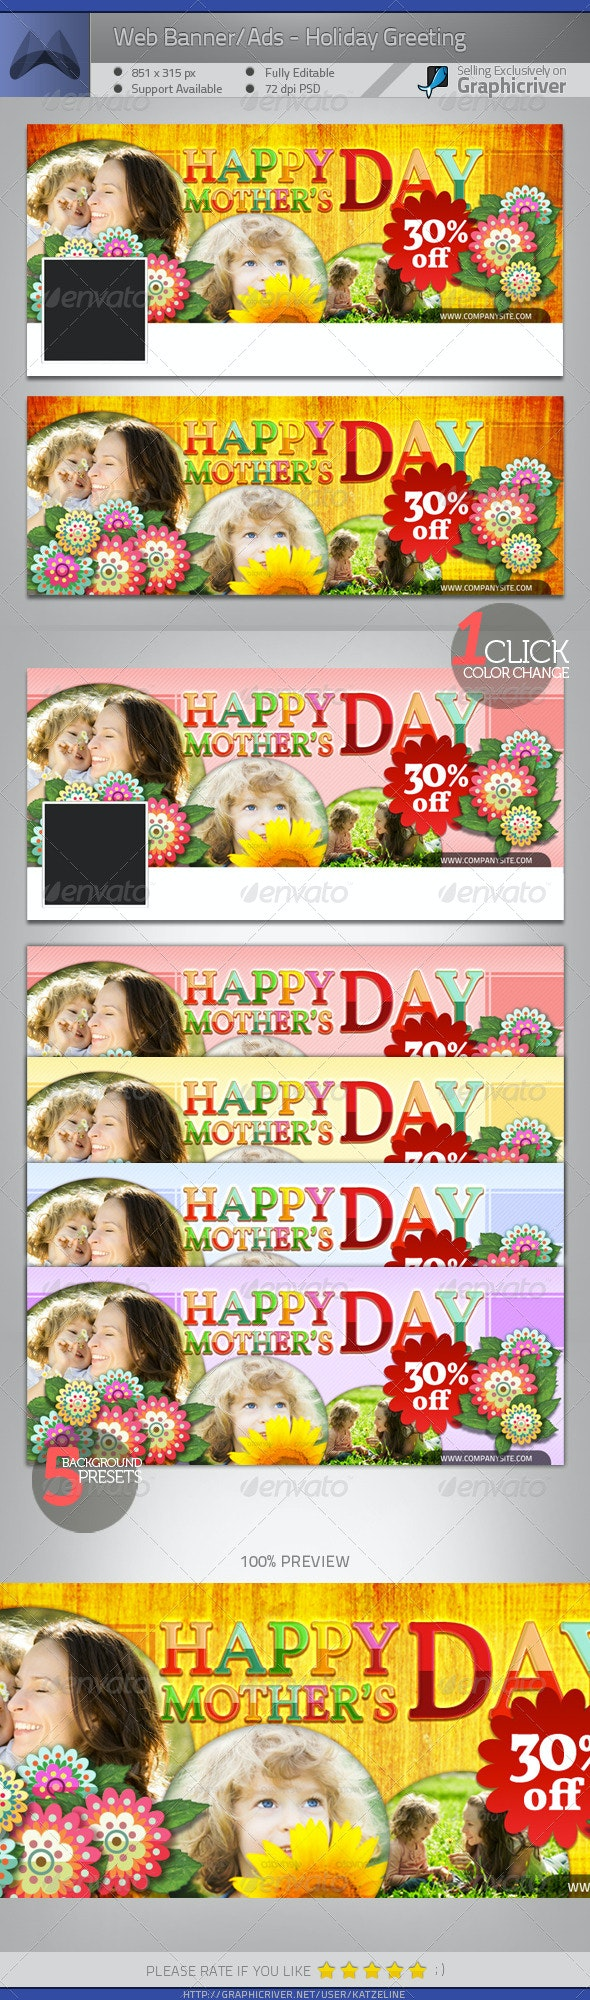 FB Timeline Cover - Mother's Day Greeting - Facebook Timeline Covers Social Media